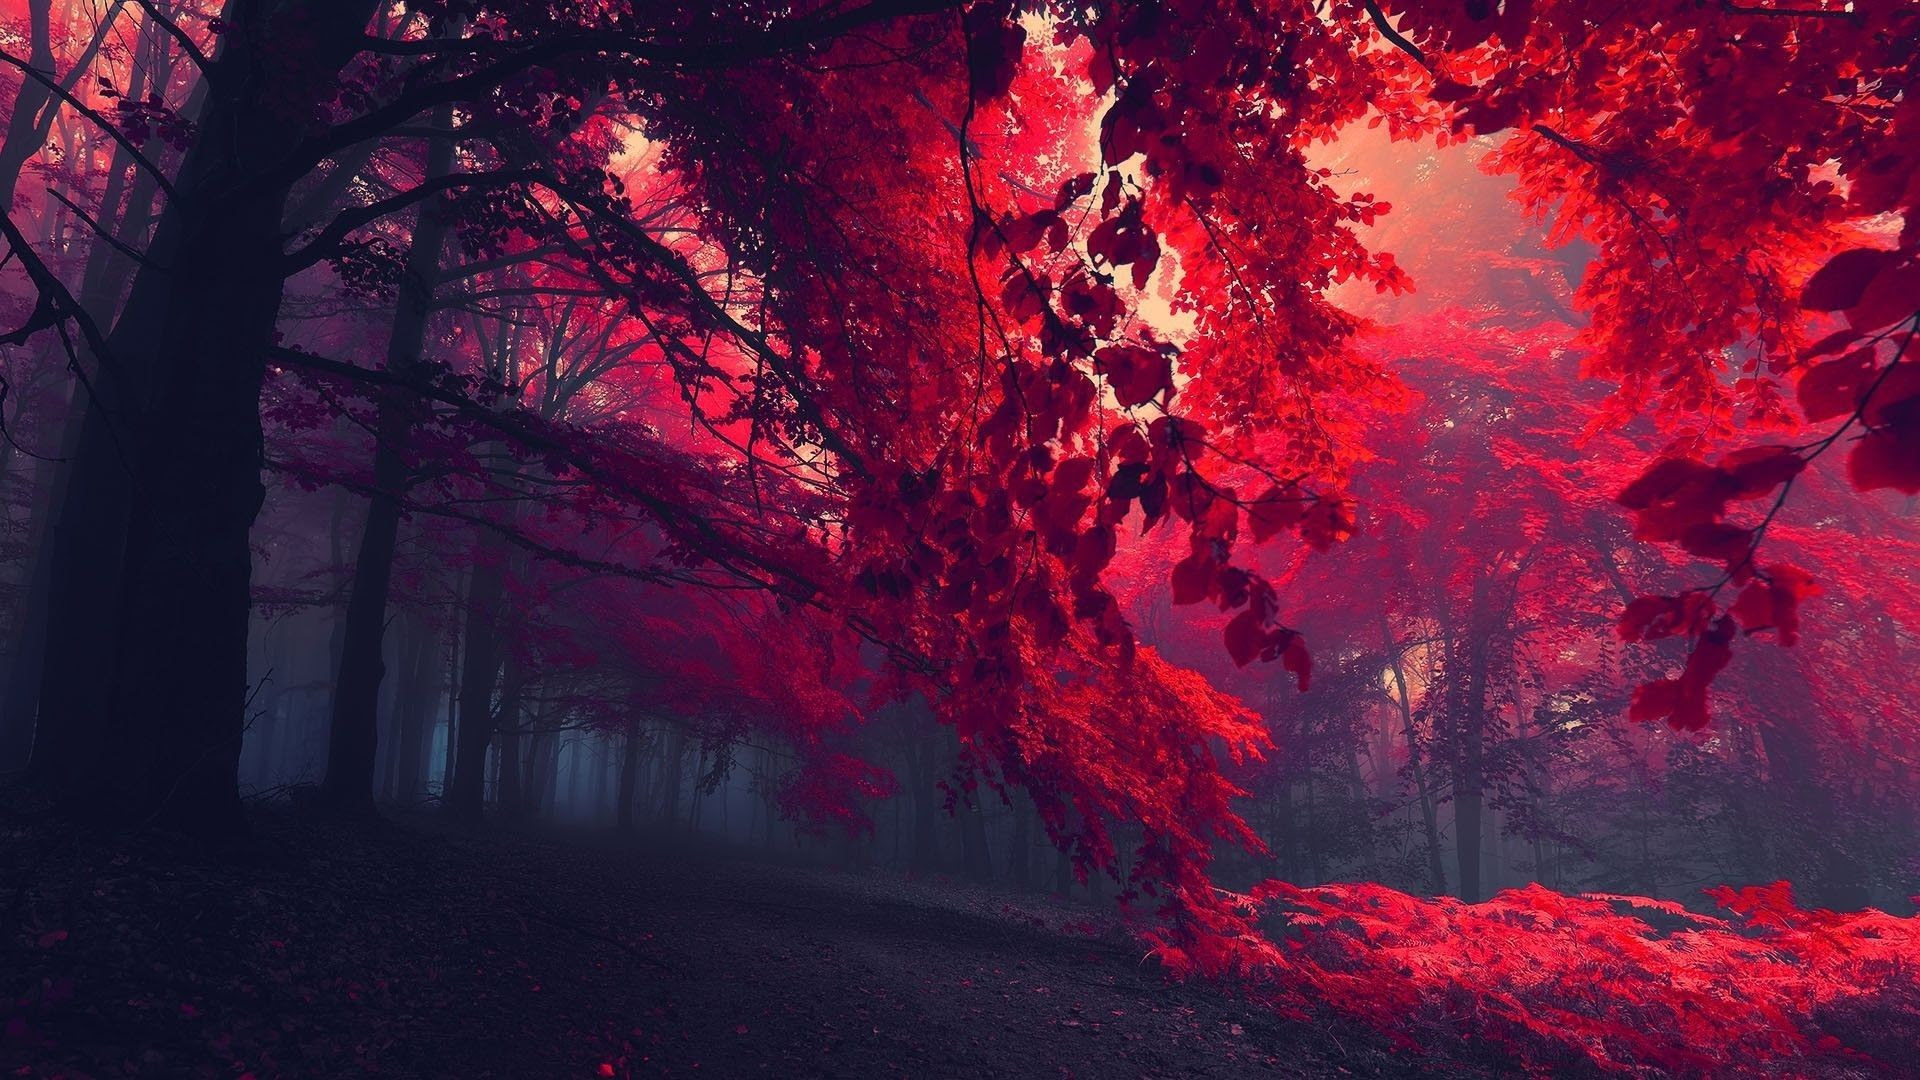 20+ Inspiration Background Wallpaper Hd 1080p 1920x1080 For Pc